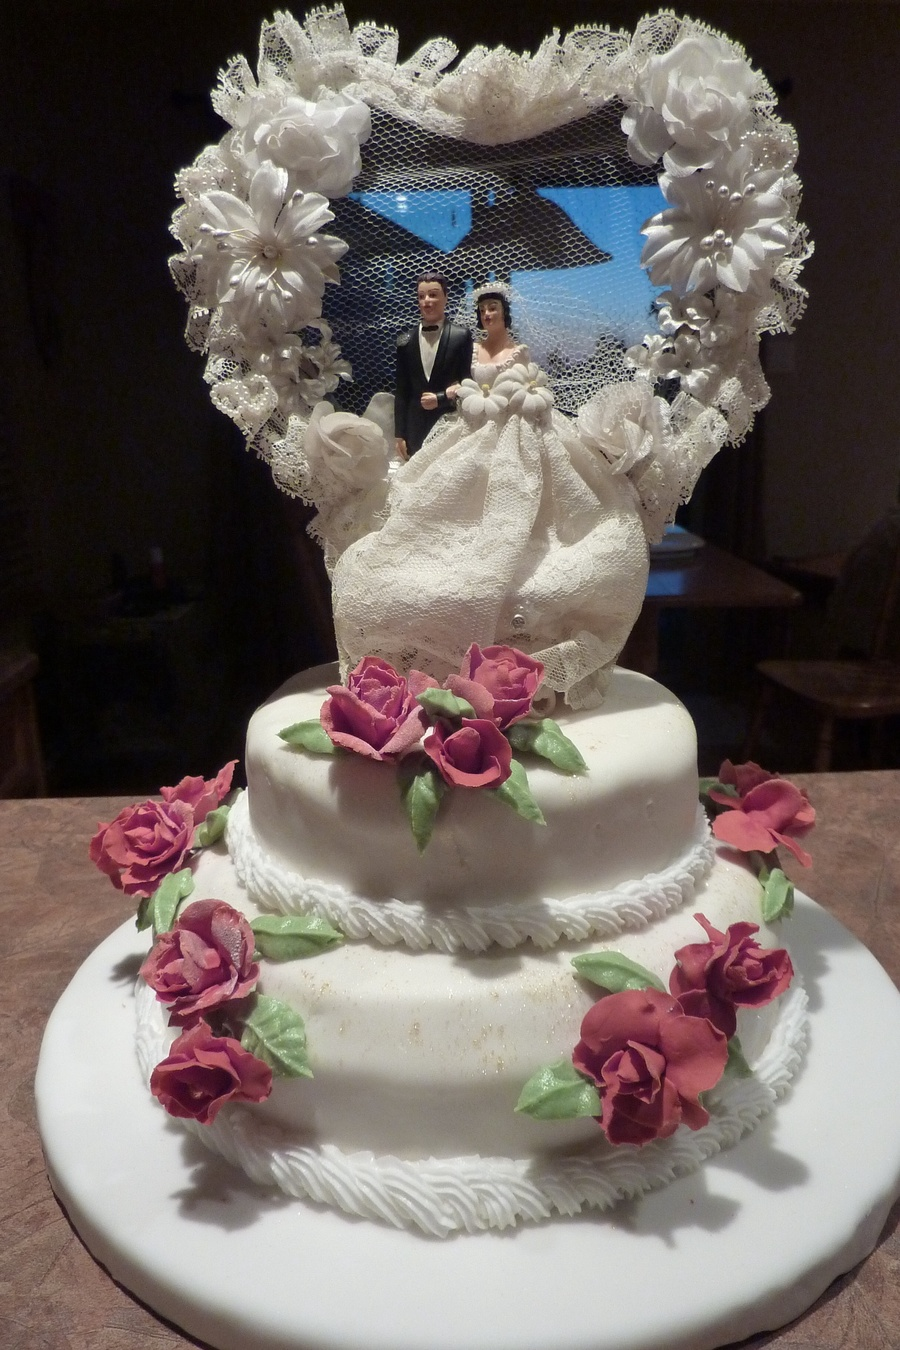 50th Wedding Anniversary Using The Cake Topper From The Bride And